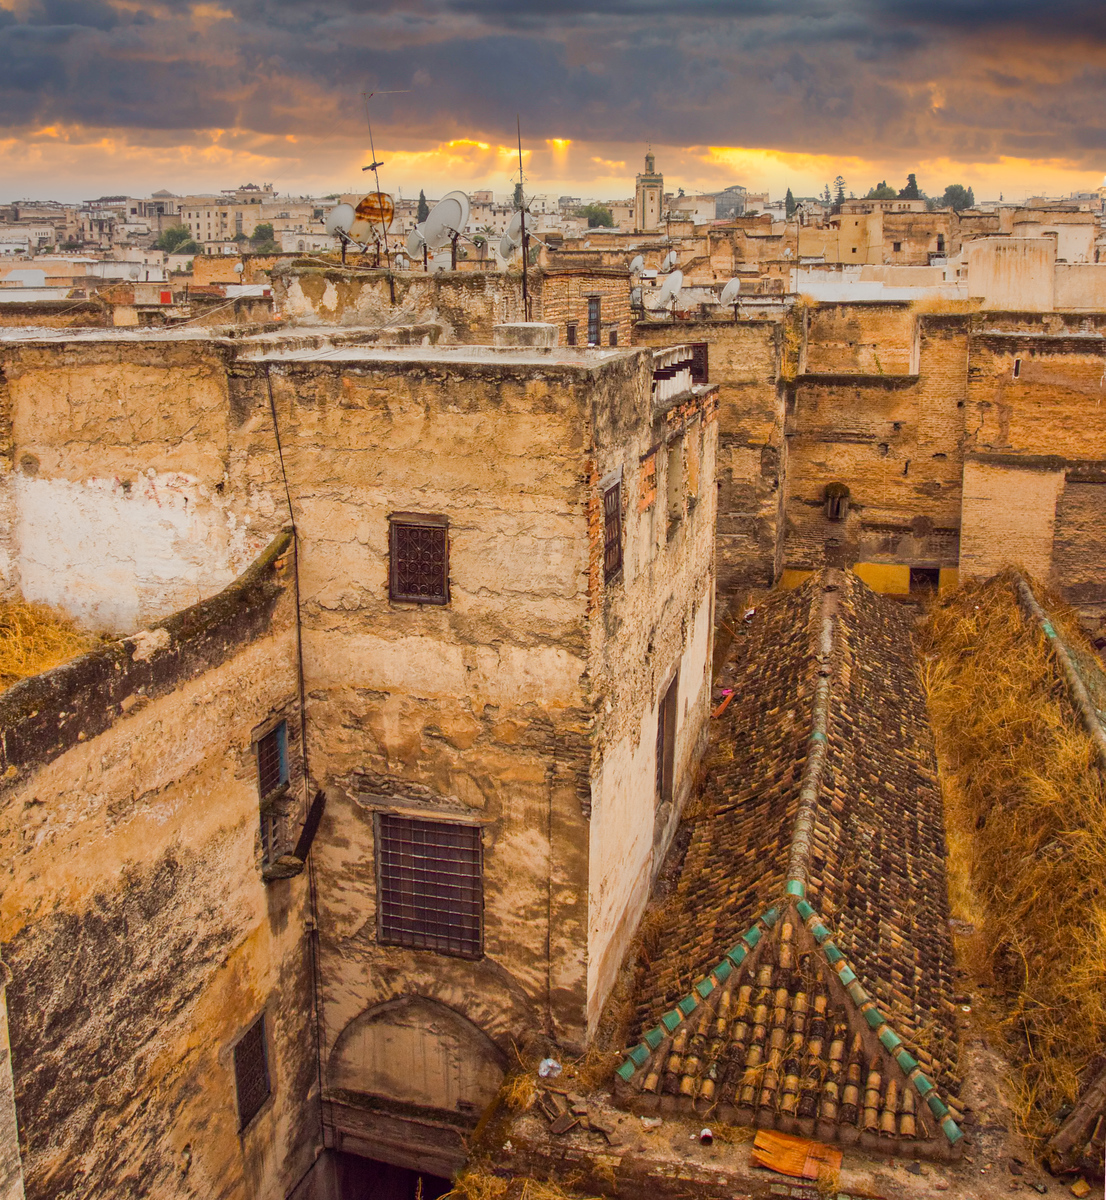 View from the rooftop area at the Riad Dar Bensouda, deep in the heart of the Fes Medina in Morocco